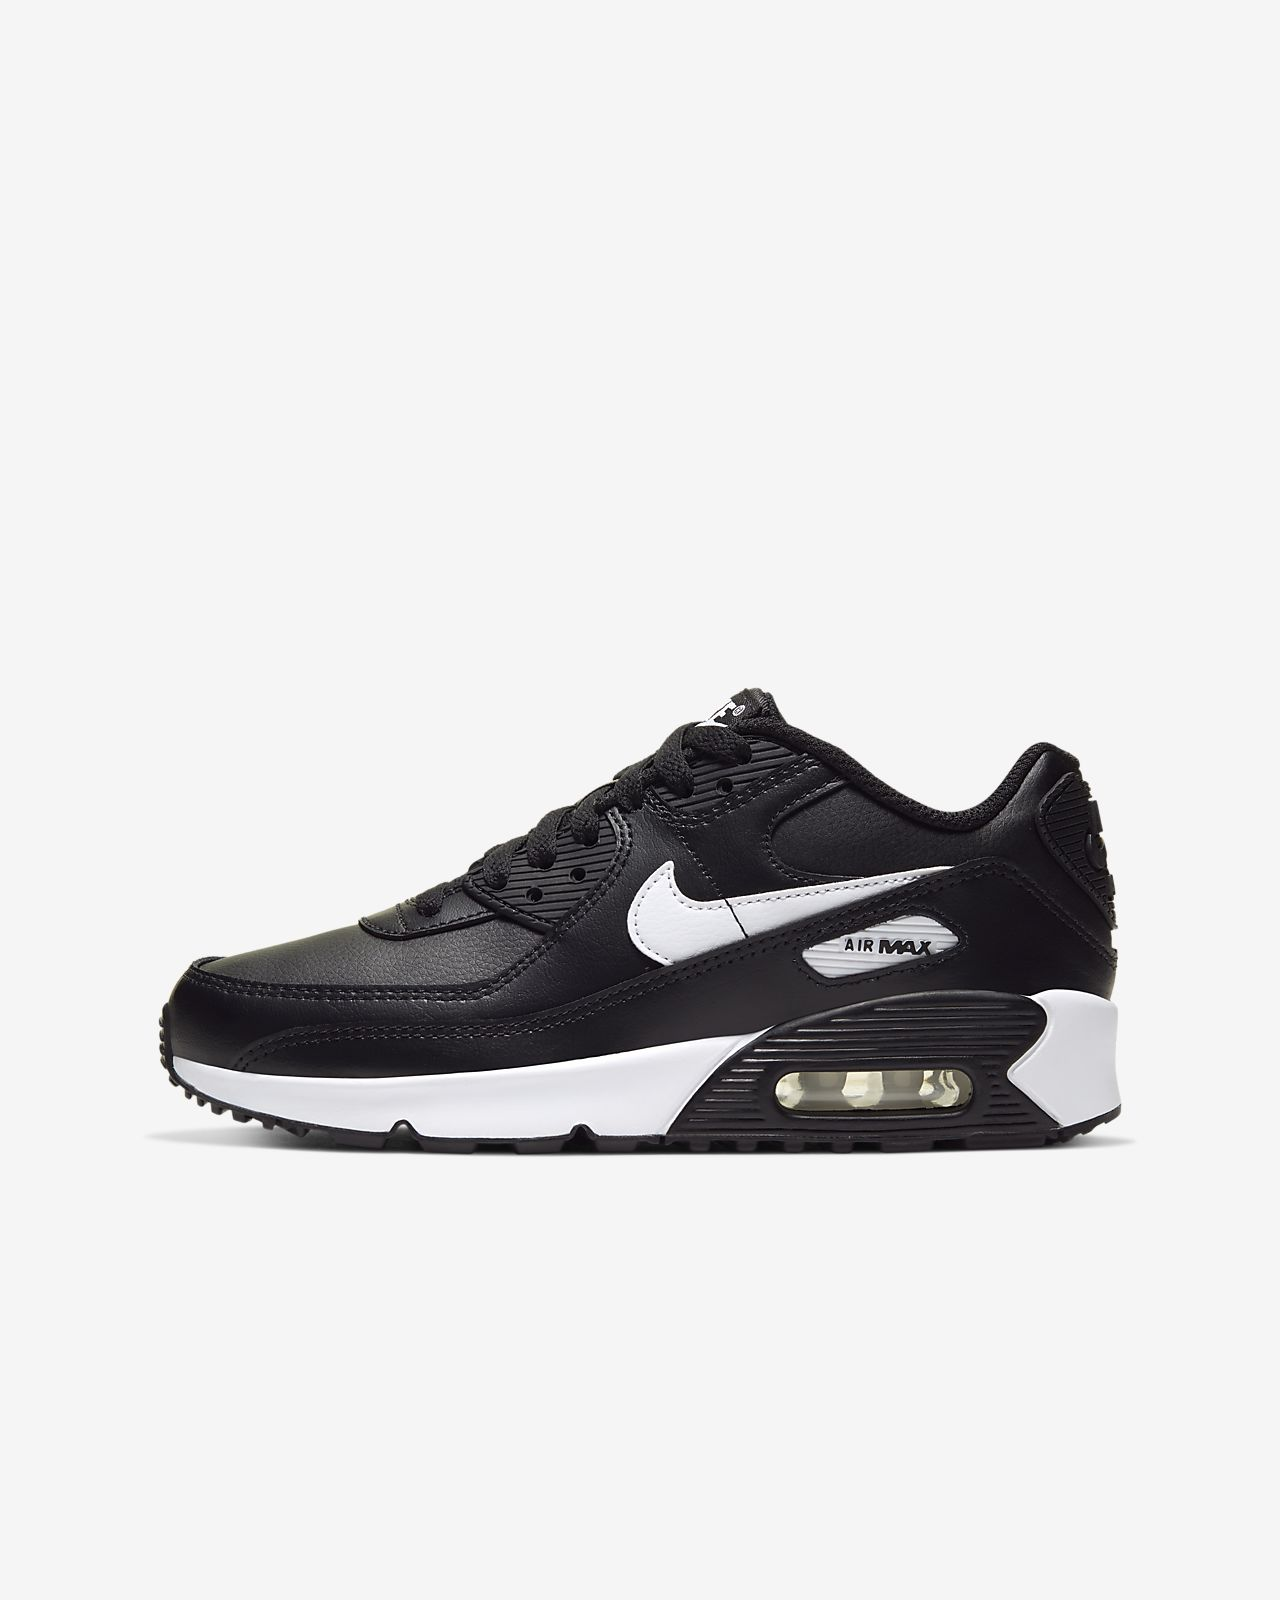 5.5 M US Nike Air Max 90 LTR Big Kids Shoes Metallic Silver//Hyper Pink 833376-004 GS